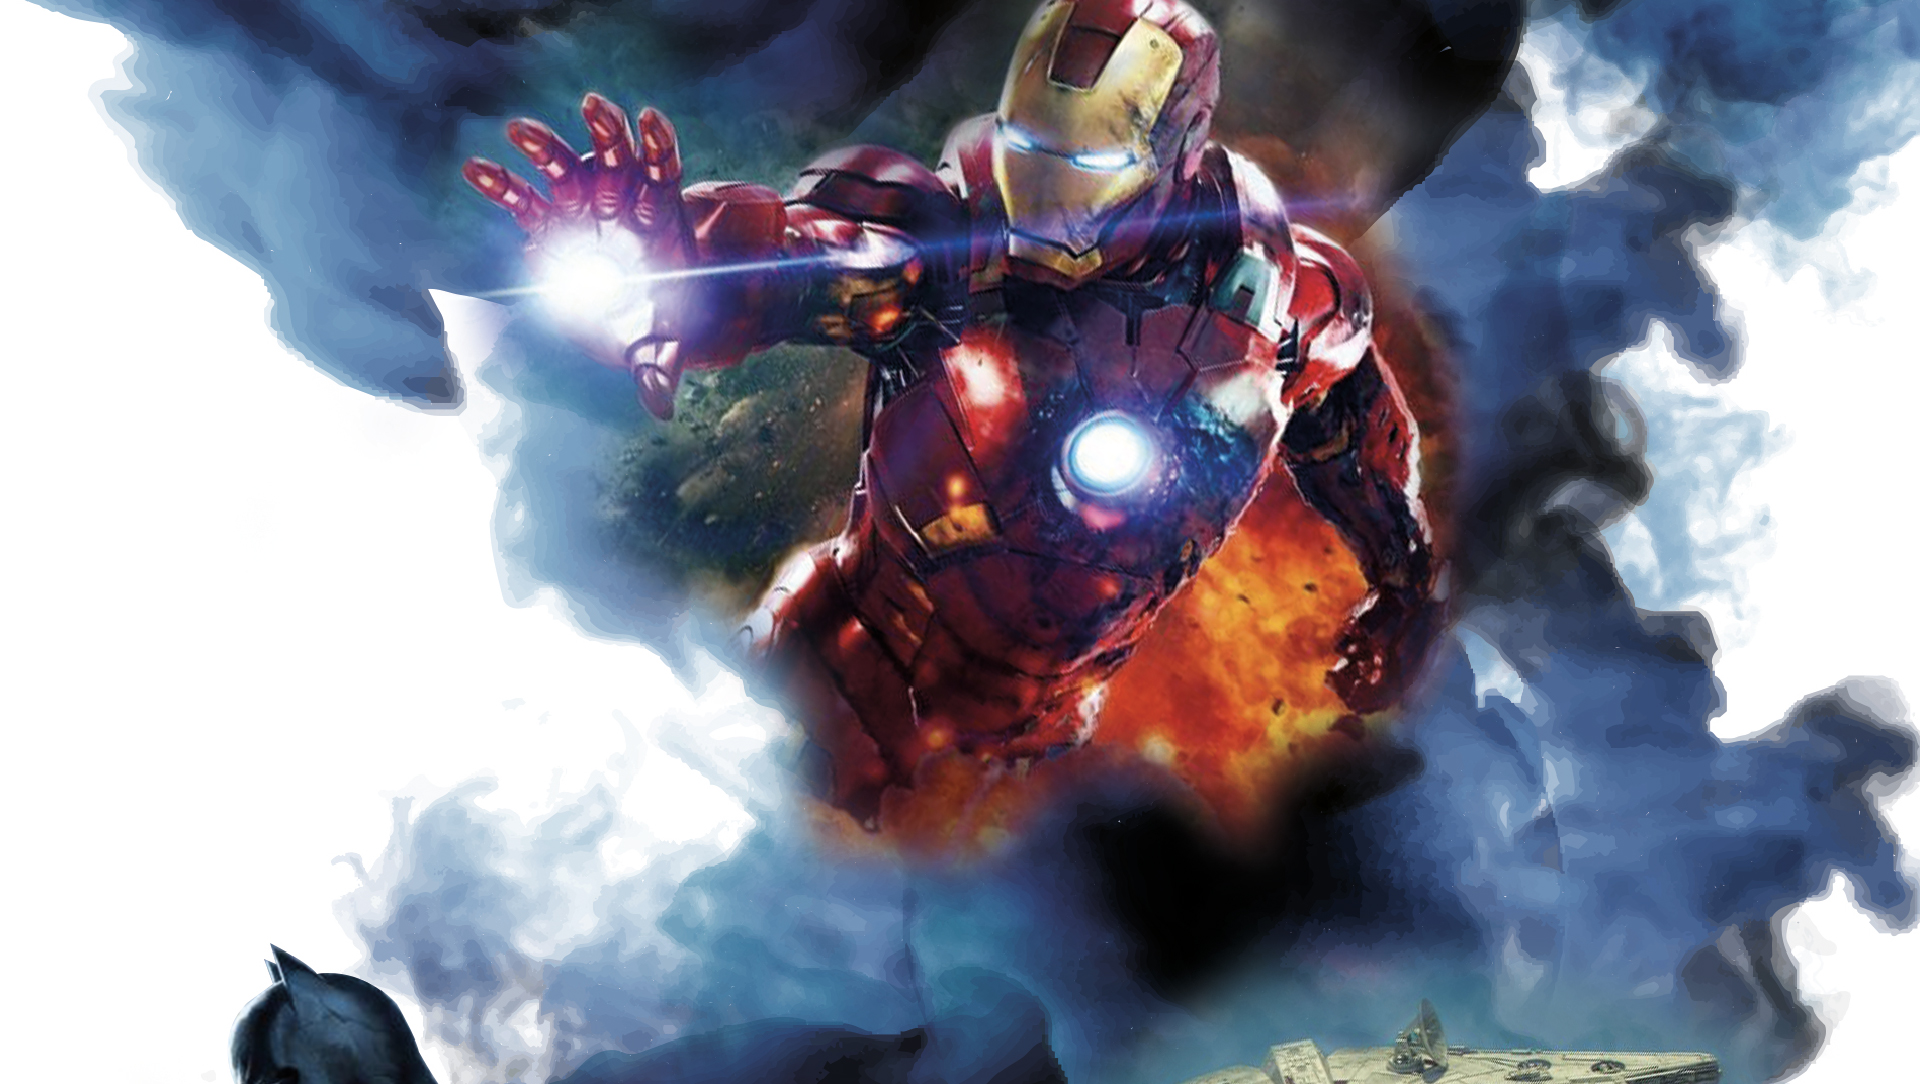 Iron man image taken from the Warped Con home page.